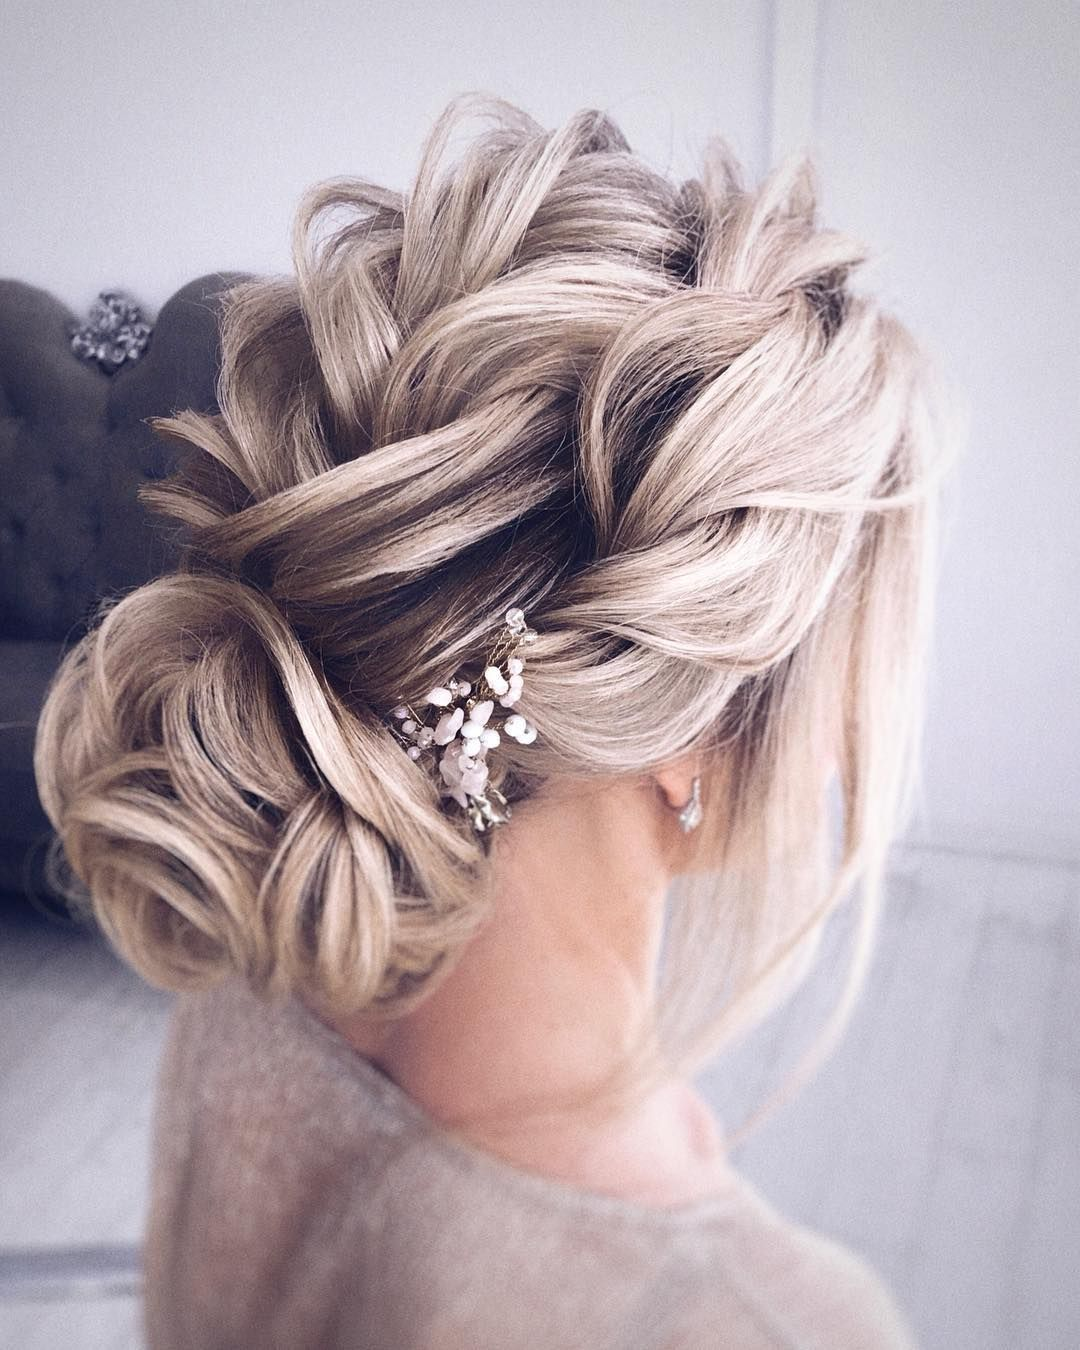 100 gorgeous wedding hair from ceremony to reception | hair